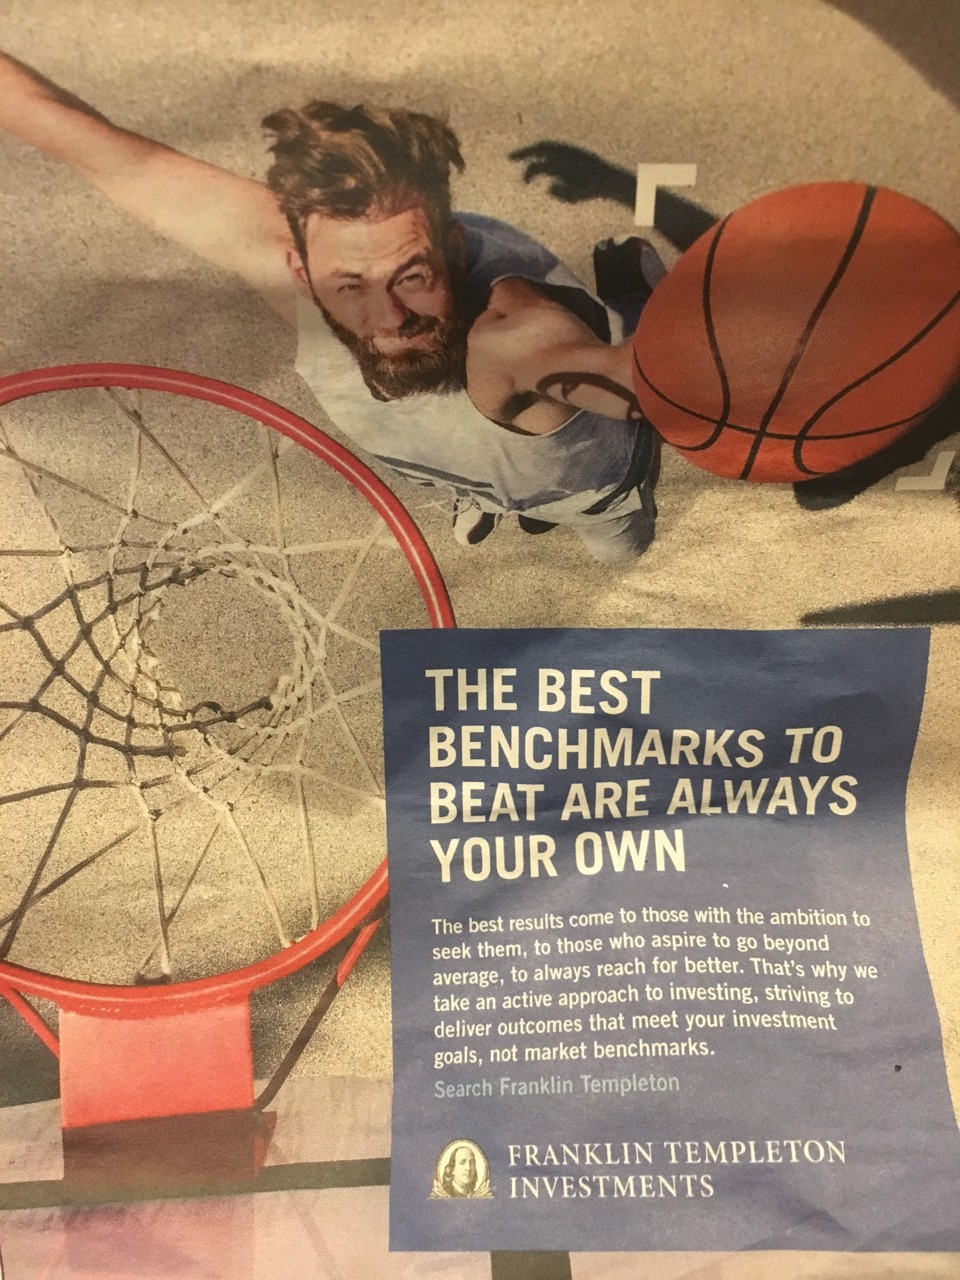 The best benchmarks to beat are always your own